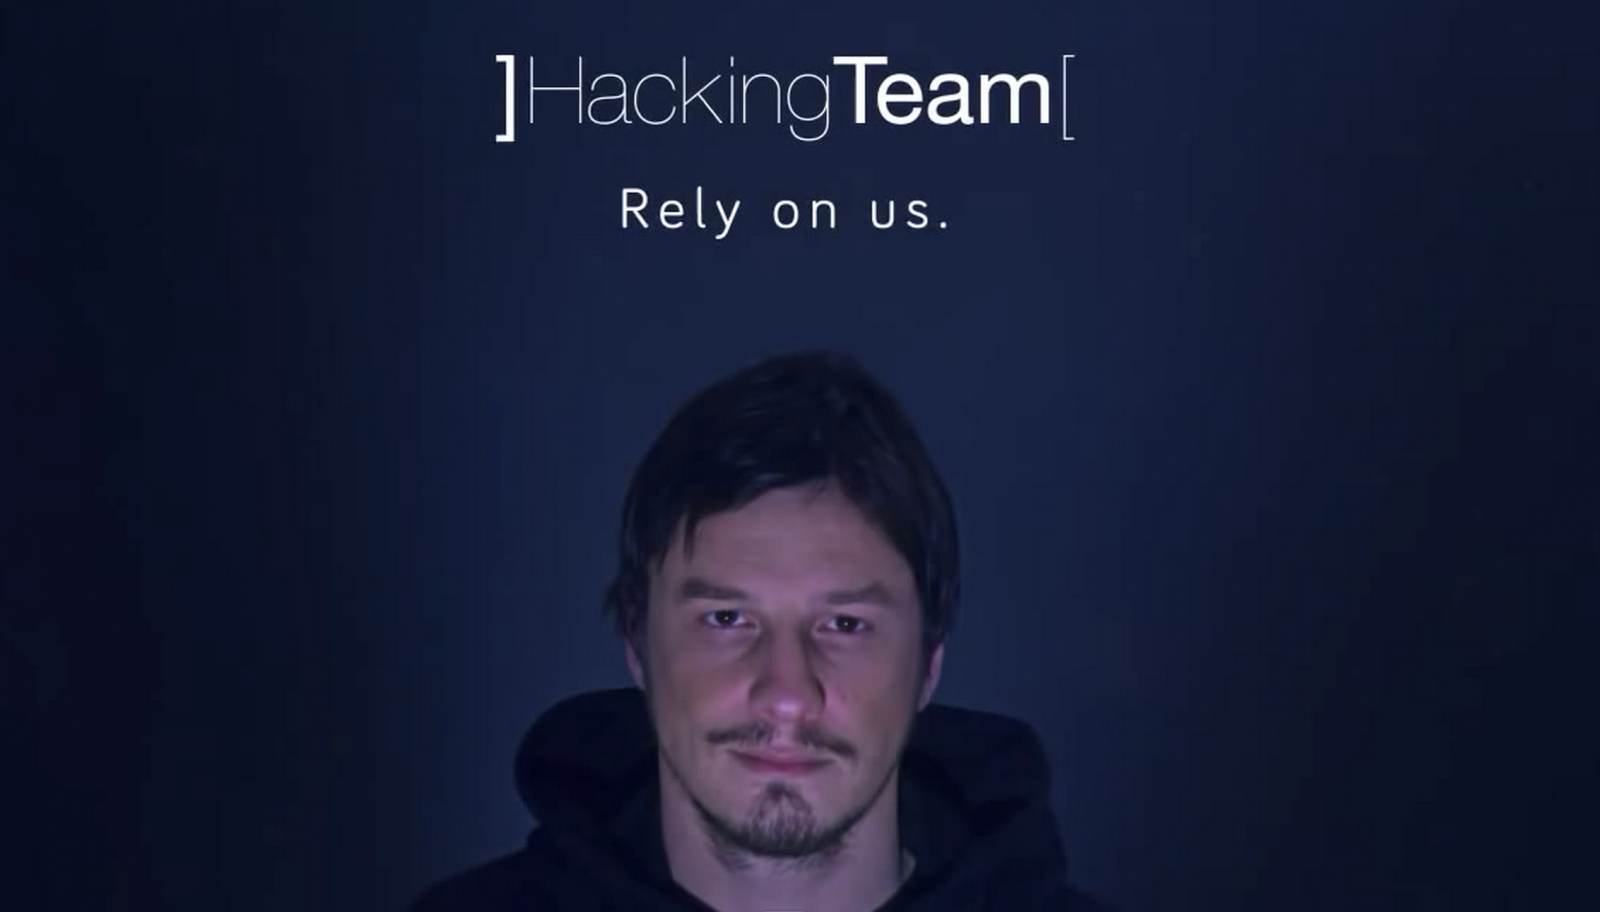 Hacking Team emails published by Wikileaks